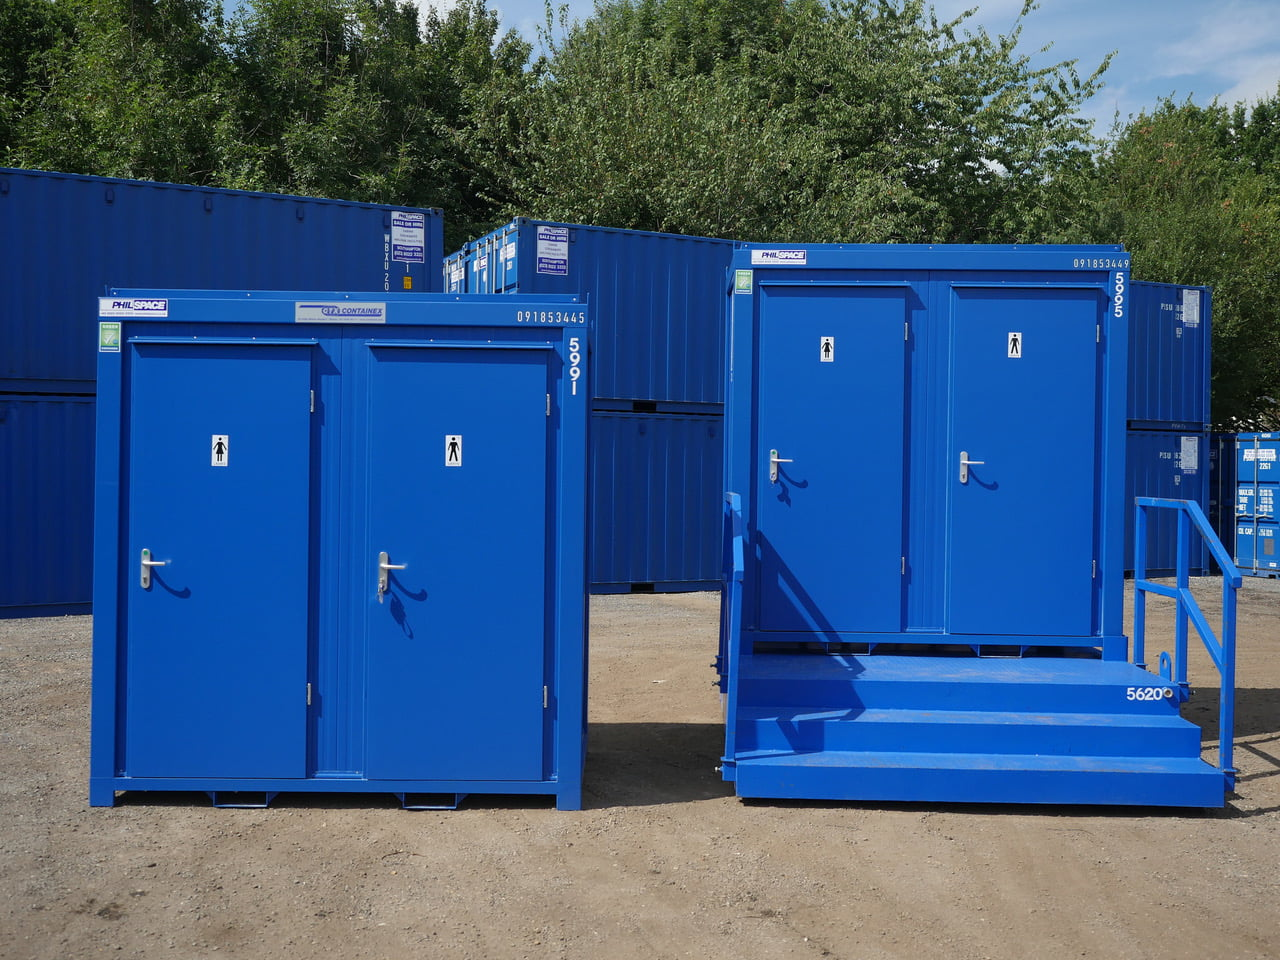 Philspace toilet block and shower cubicles